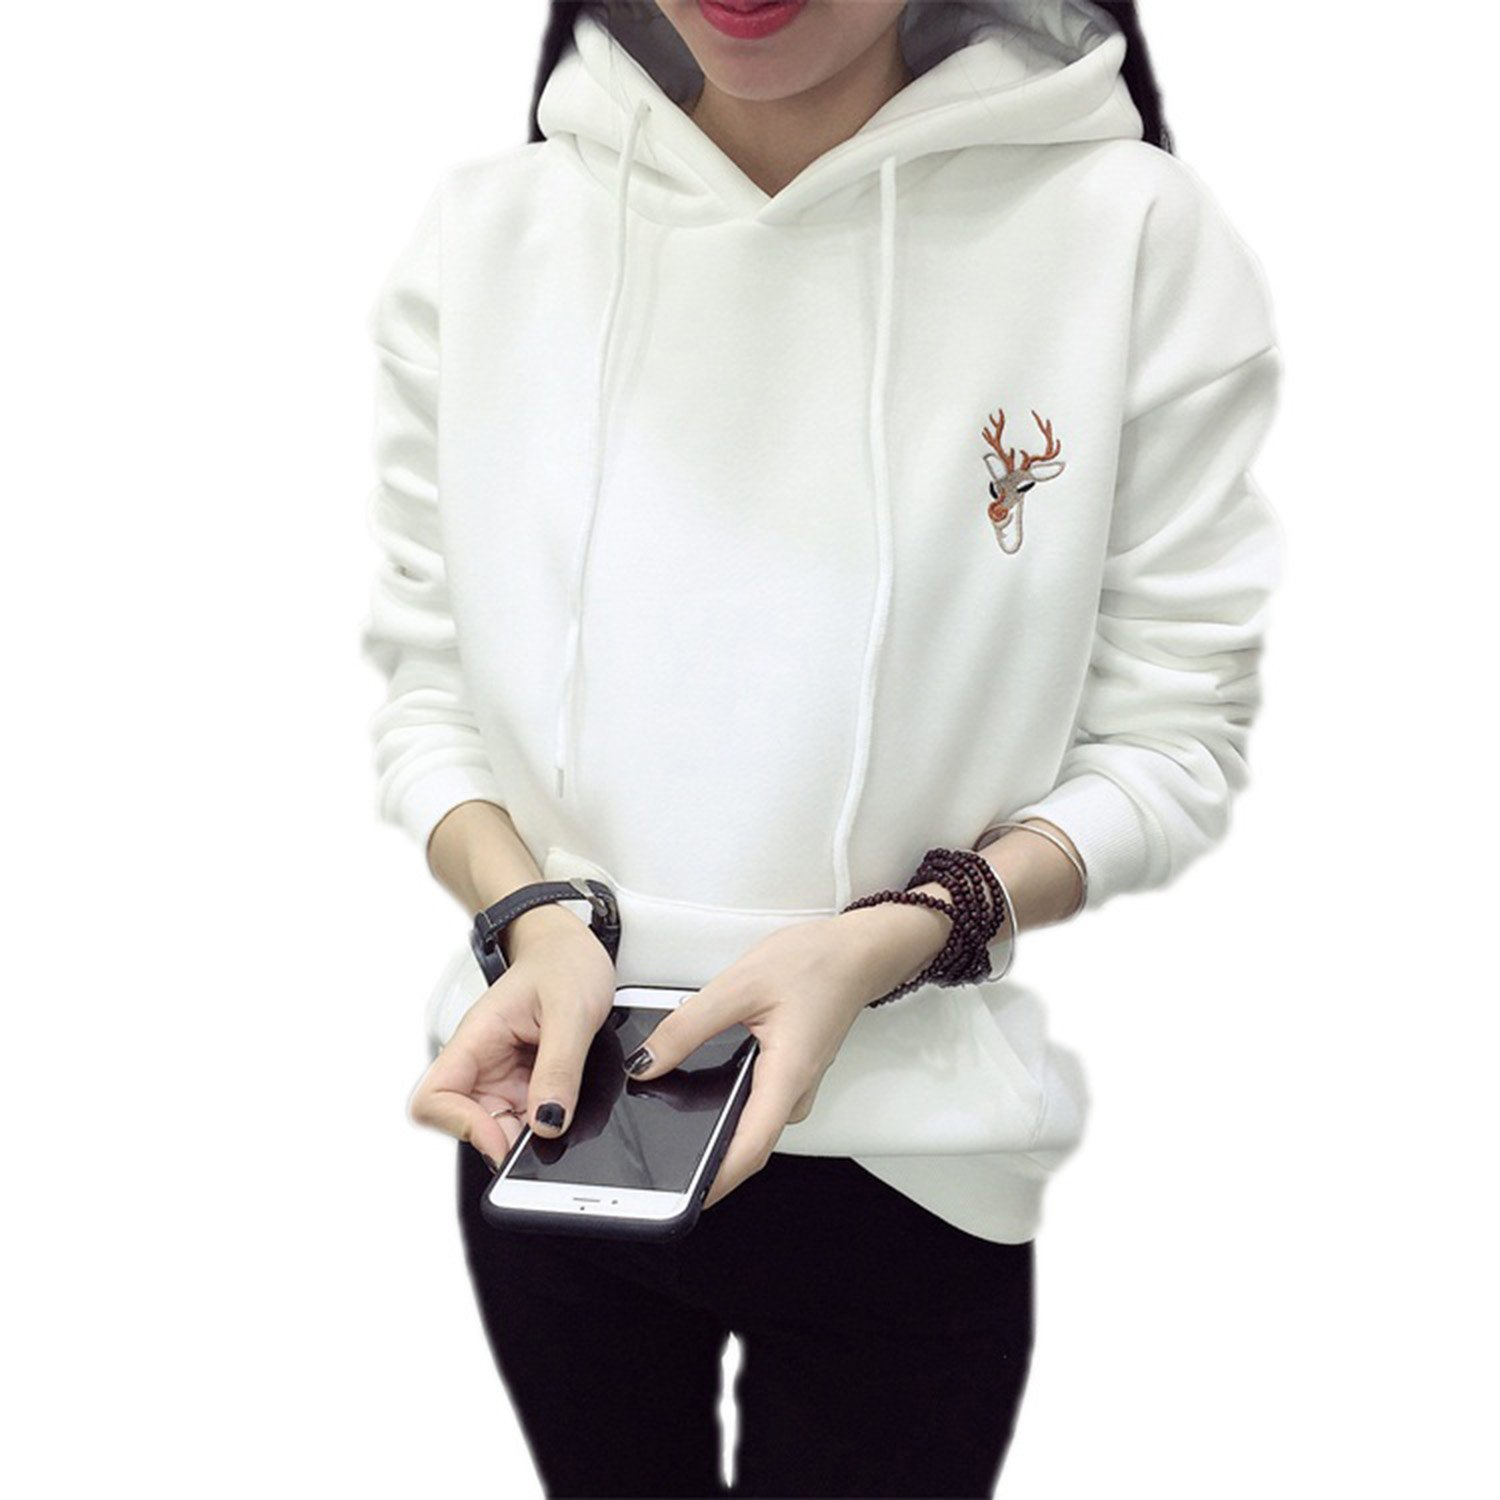 MZjJPN Fashion Embroidery Hooded Tracksuits For Women Casual Sweatshirts Hoodie Lovely